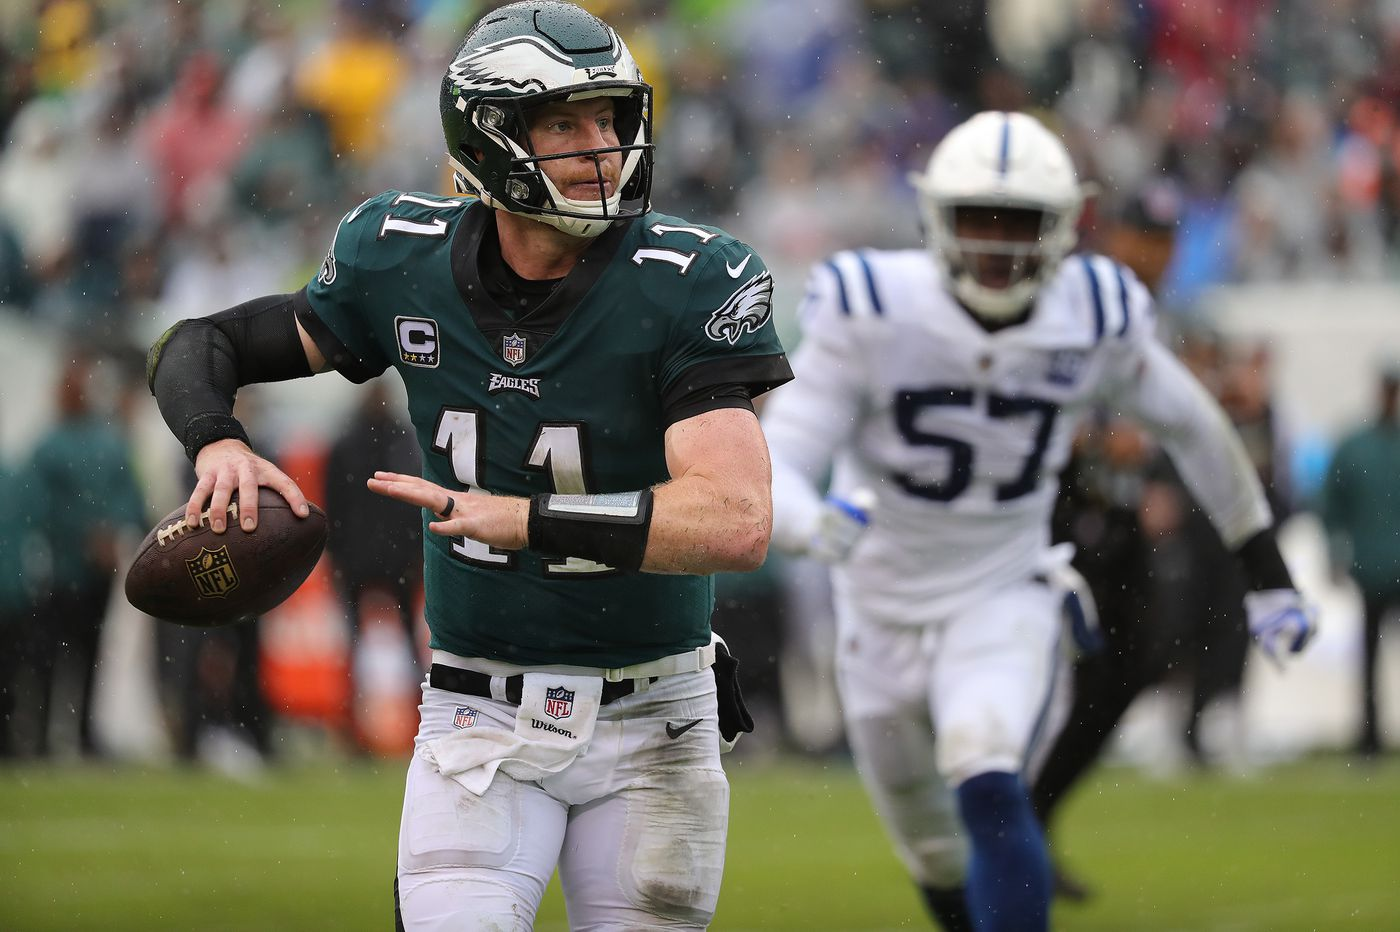 Now that the Eagles' Carson Wentz has played, the discussion can shift from his health to his performance